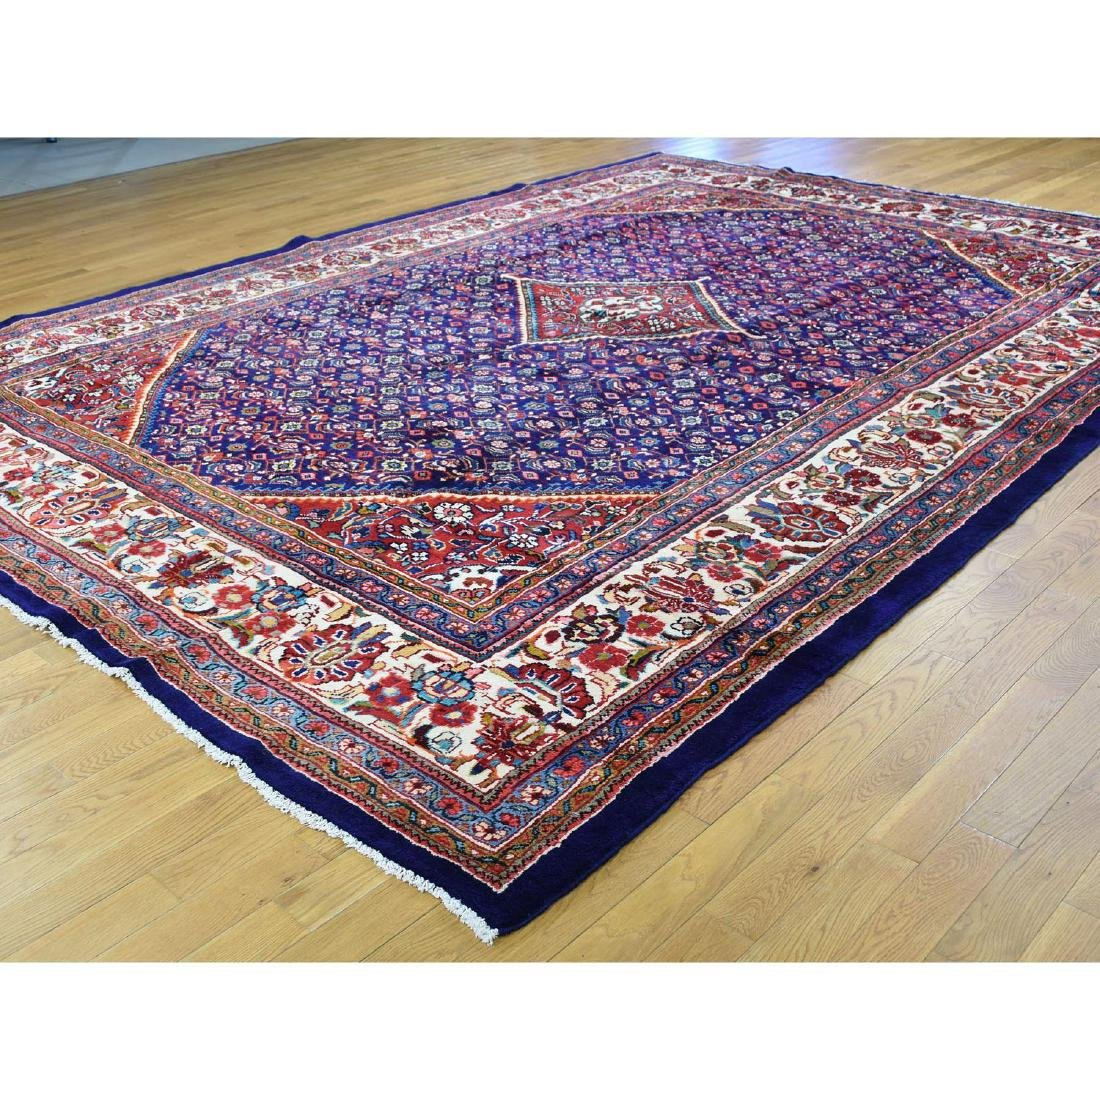 Hand Knotted Persian Mahal Pure Wool Blue Rug 10x13 - 3